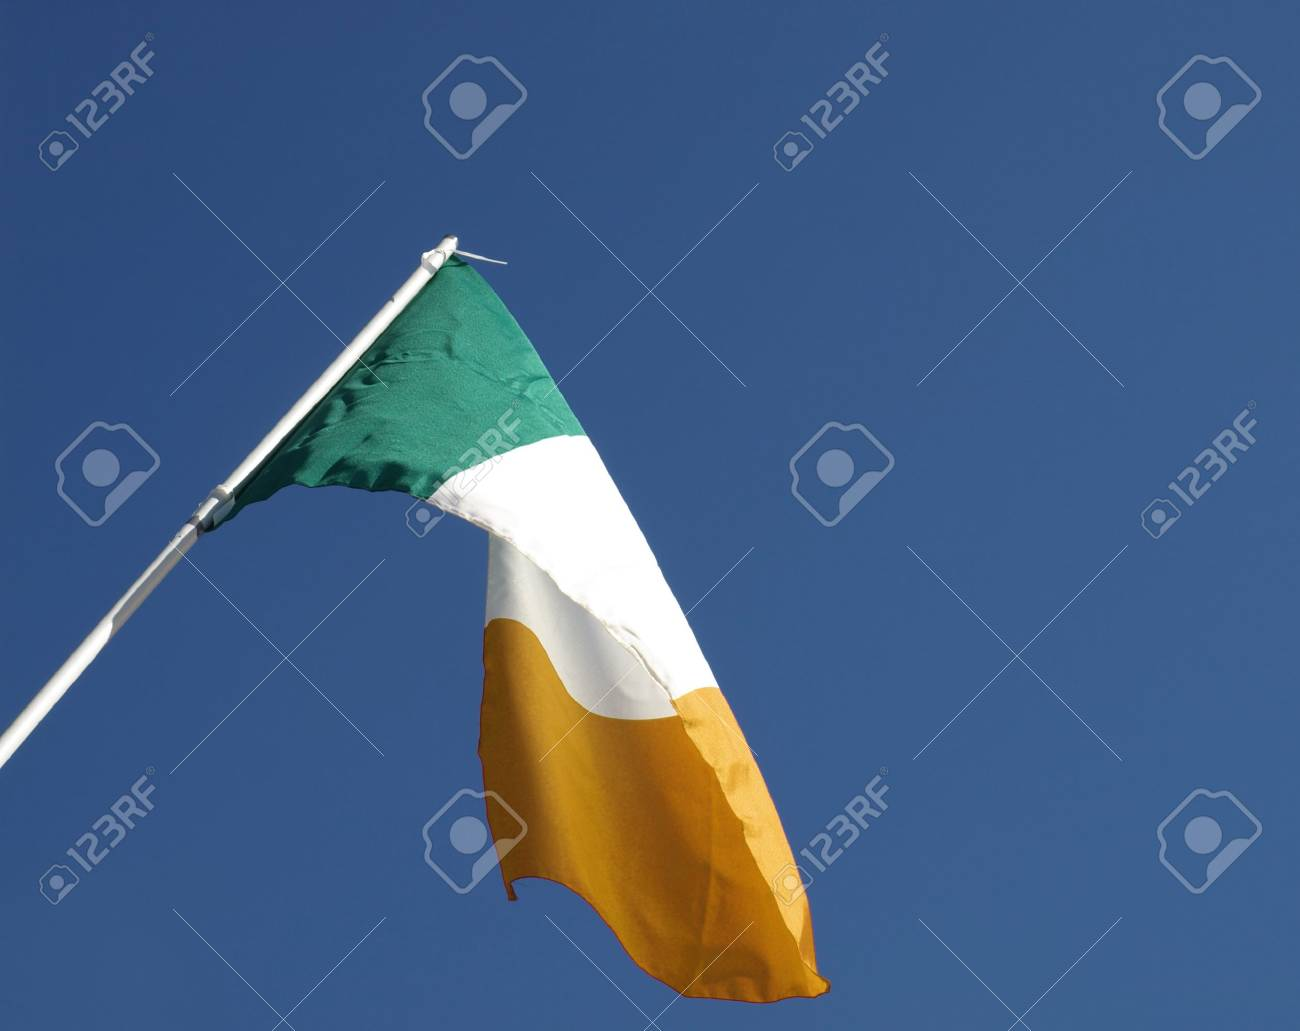 Irish flag over a blue sky background Stock Photo - 5942842